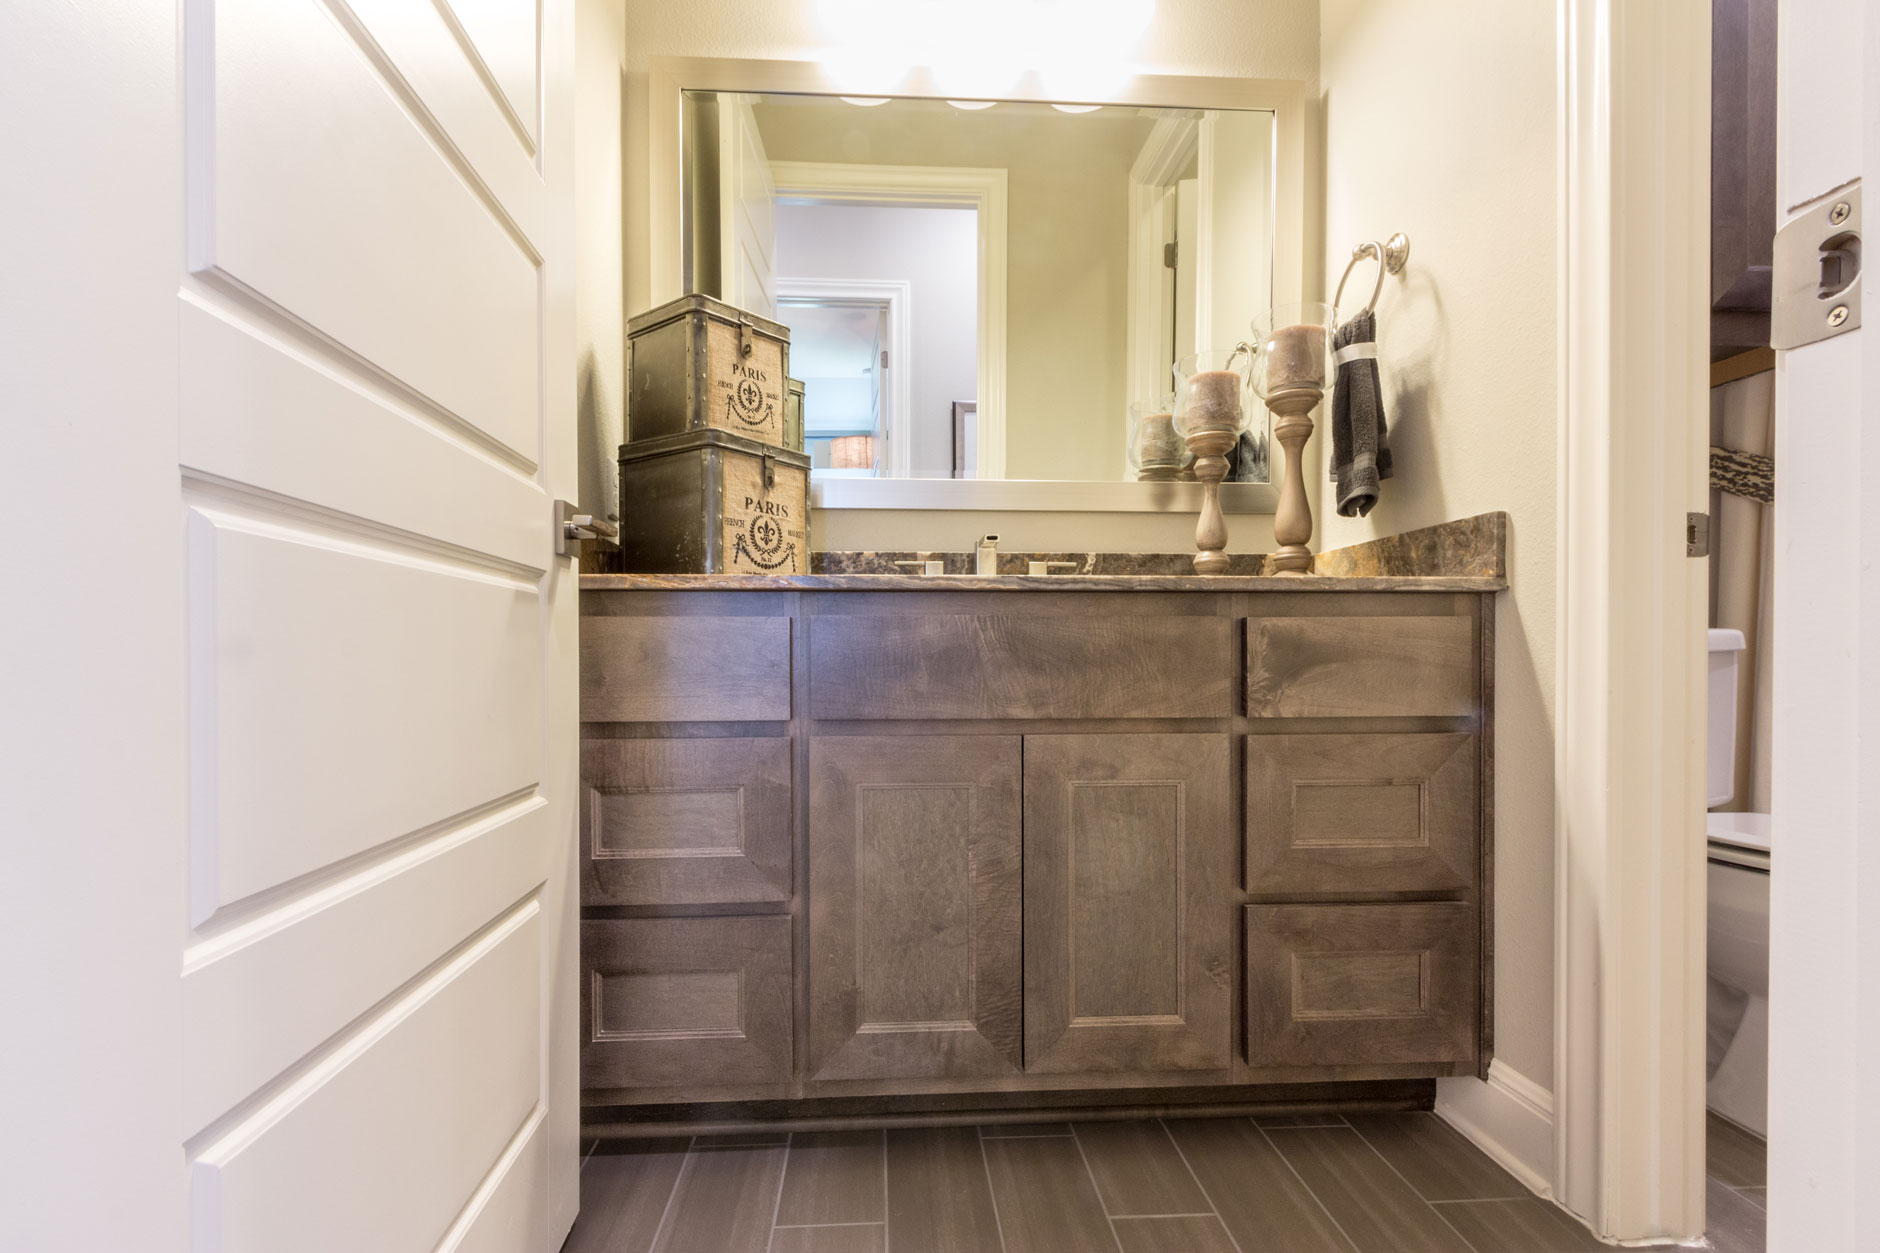 Bathroom cabinets with TaylorCraft mitered doors in hard maple with gray stain